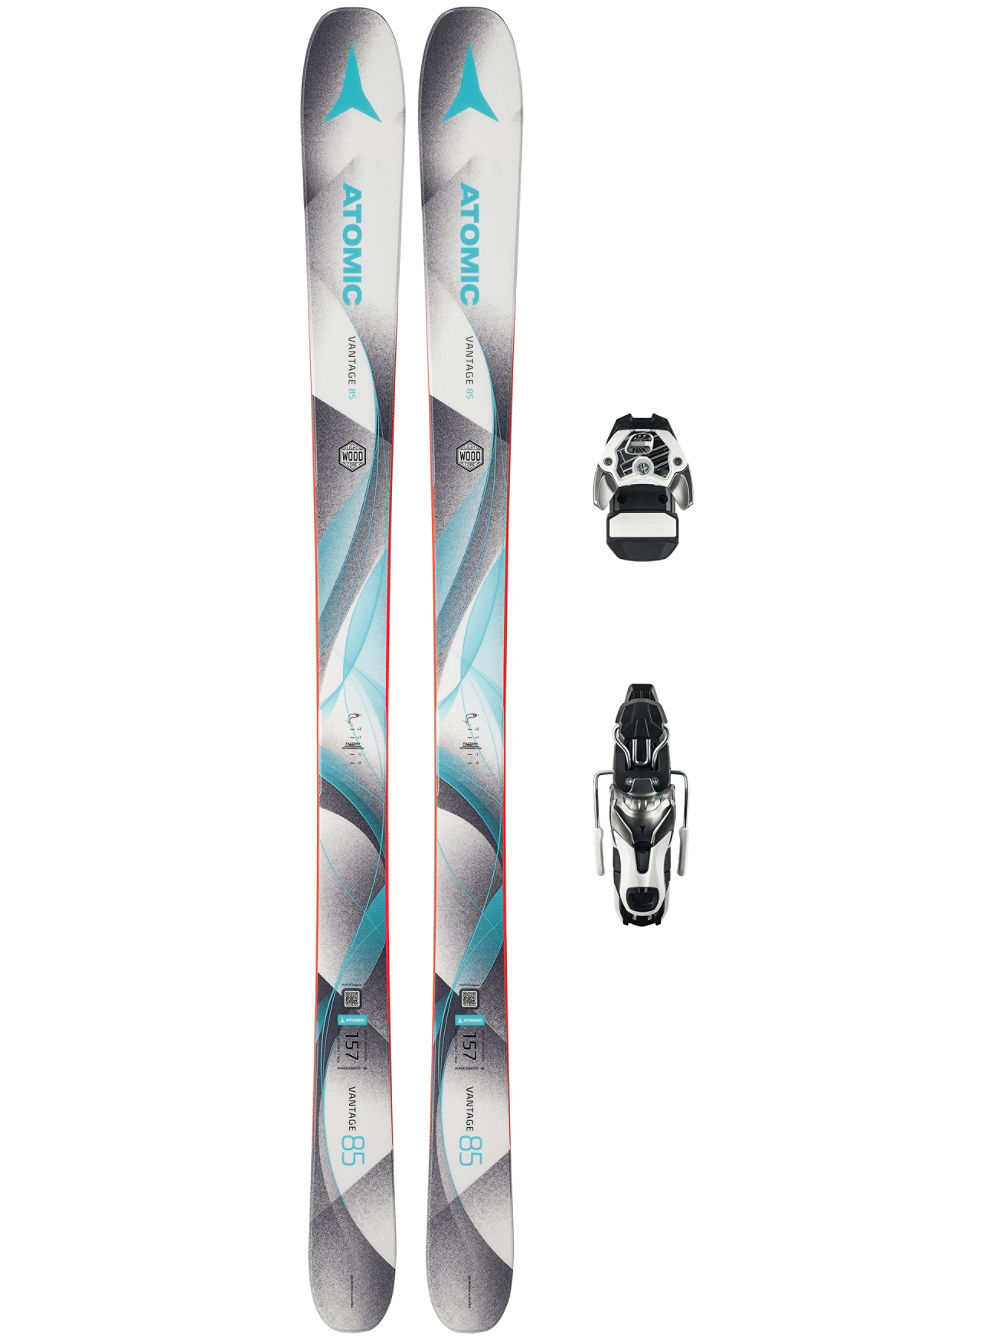 Vantage 85 W 165 + Warden11 90mm 2018 Freeski-Set